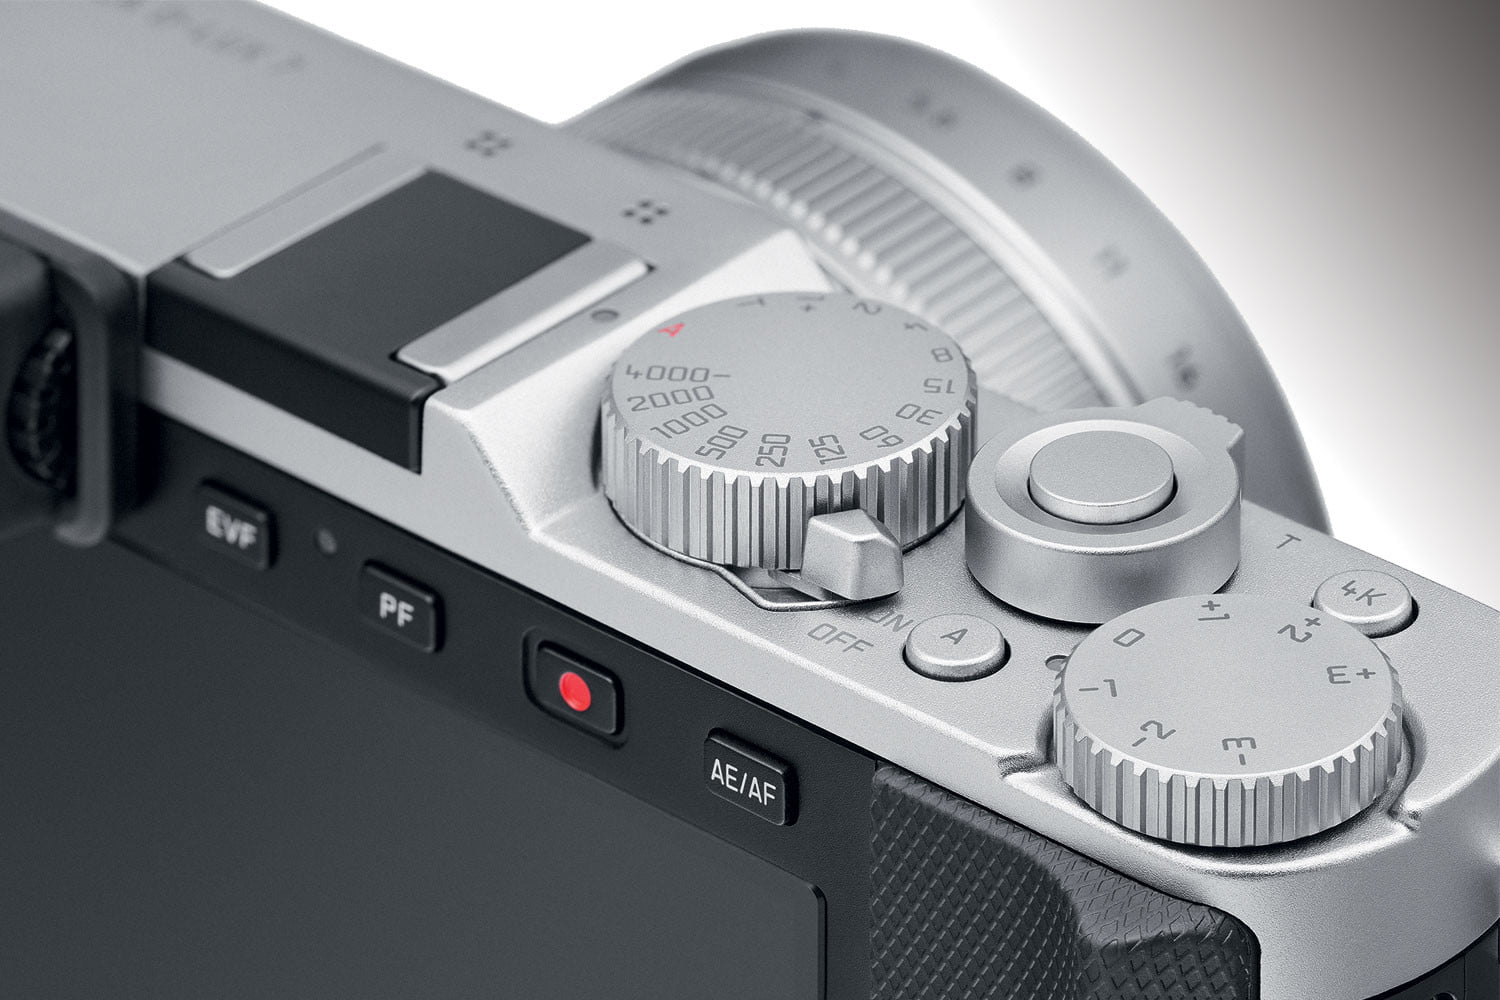 leica d lux 7 announcement featured